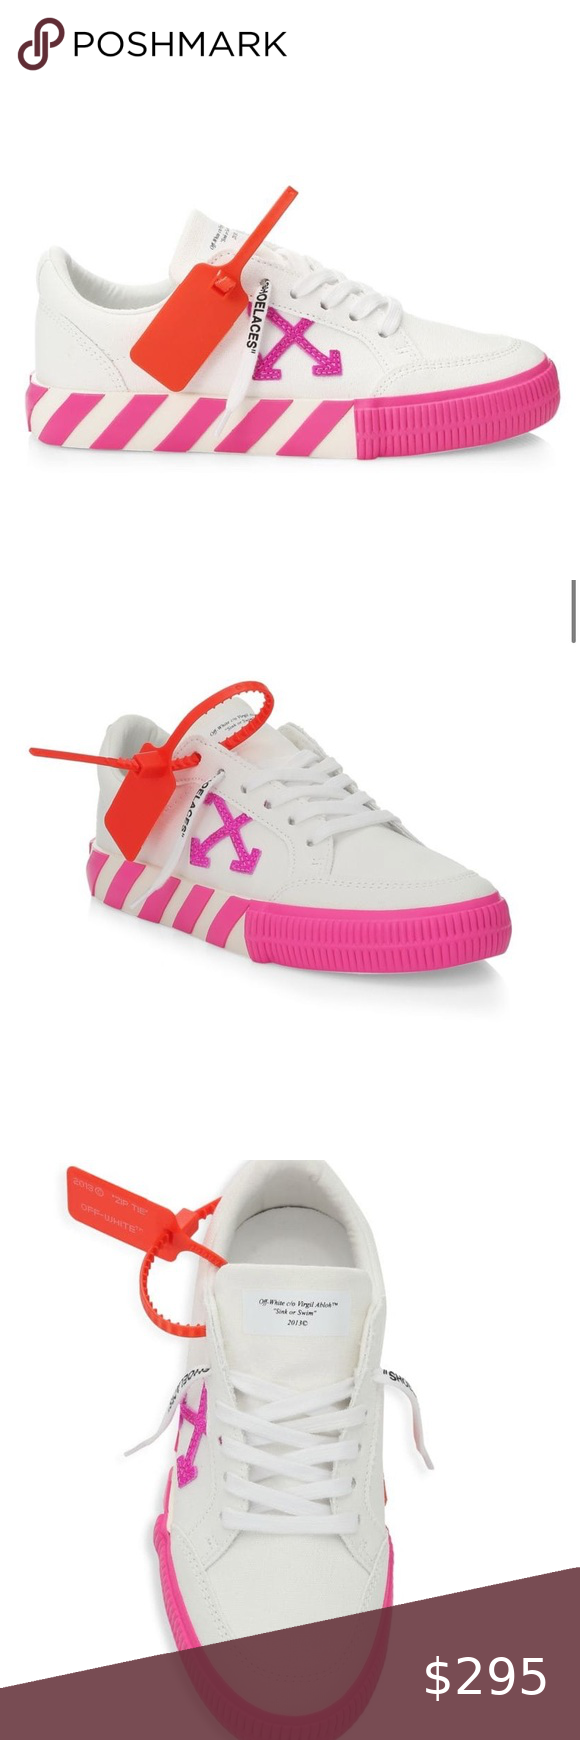 Off White Sneakers Neon Pink White Canvas And Orange Rubber New In Box Never Worn Includes Dust Bag S White Sneakers White Shoes Sneakers Off White Shoes